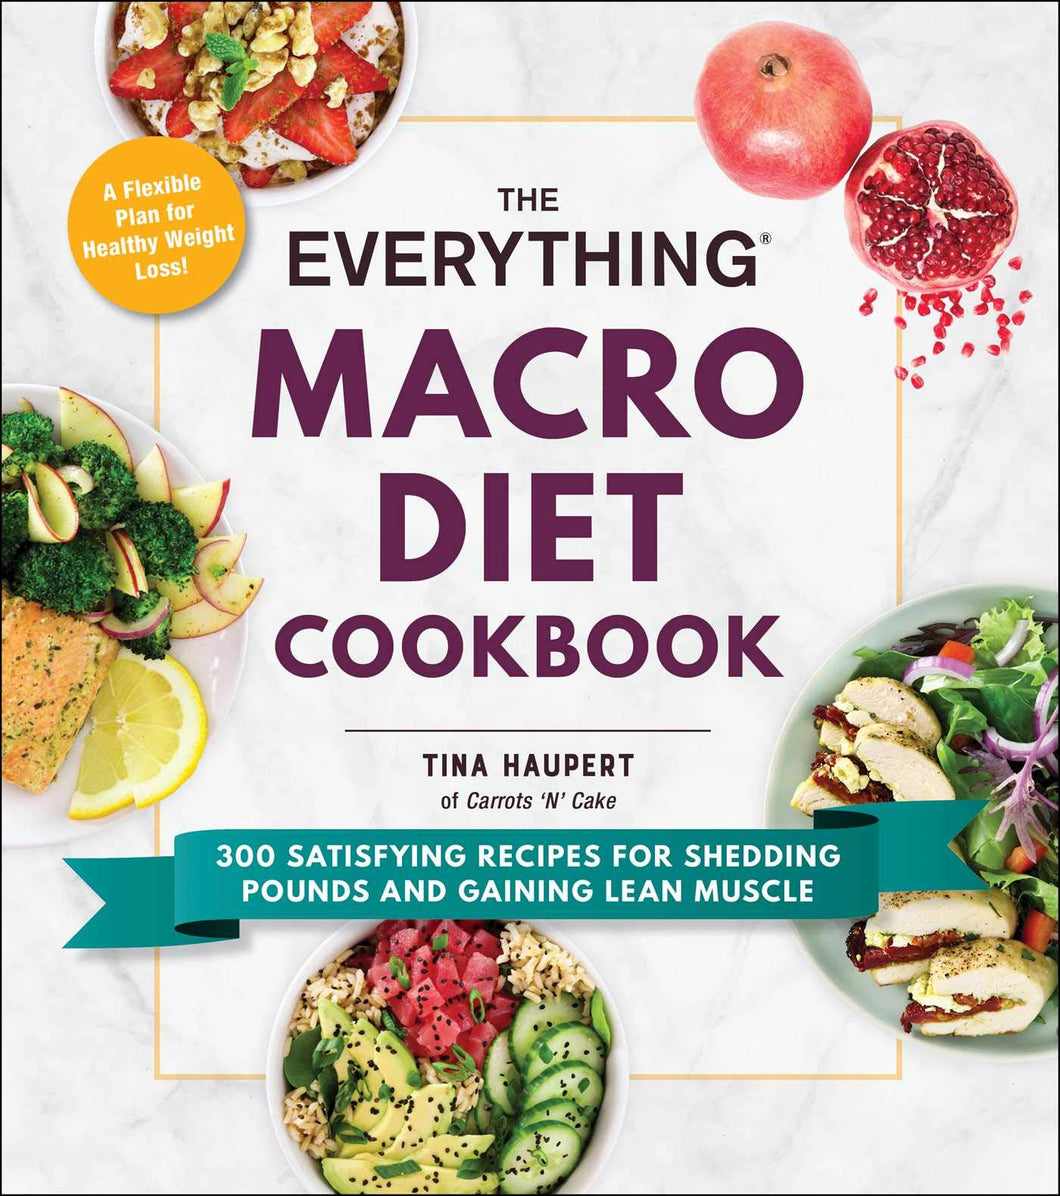 The Everything Macro Diet Cookbook: 300 Satisfying Recipes for Shedding Pounds and Gaining Lean Muscle - Tolerant Planet